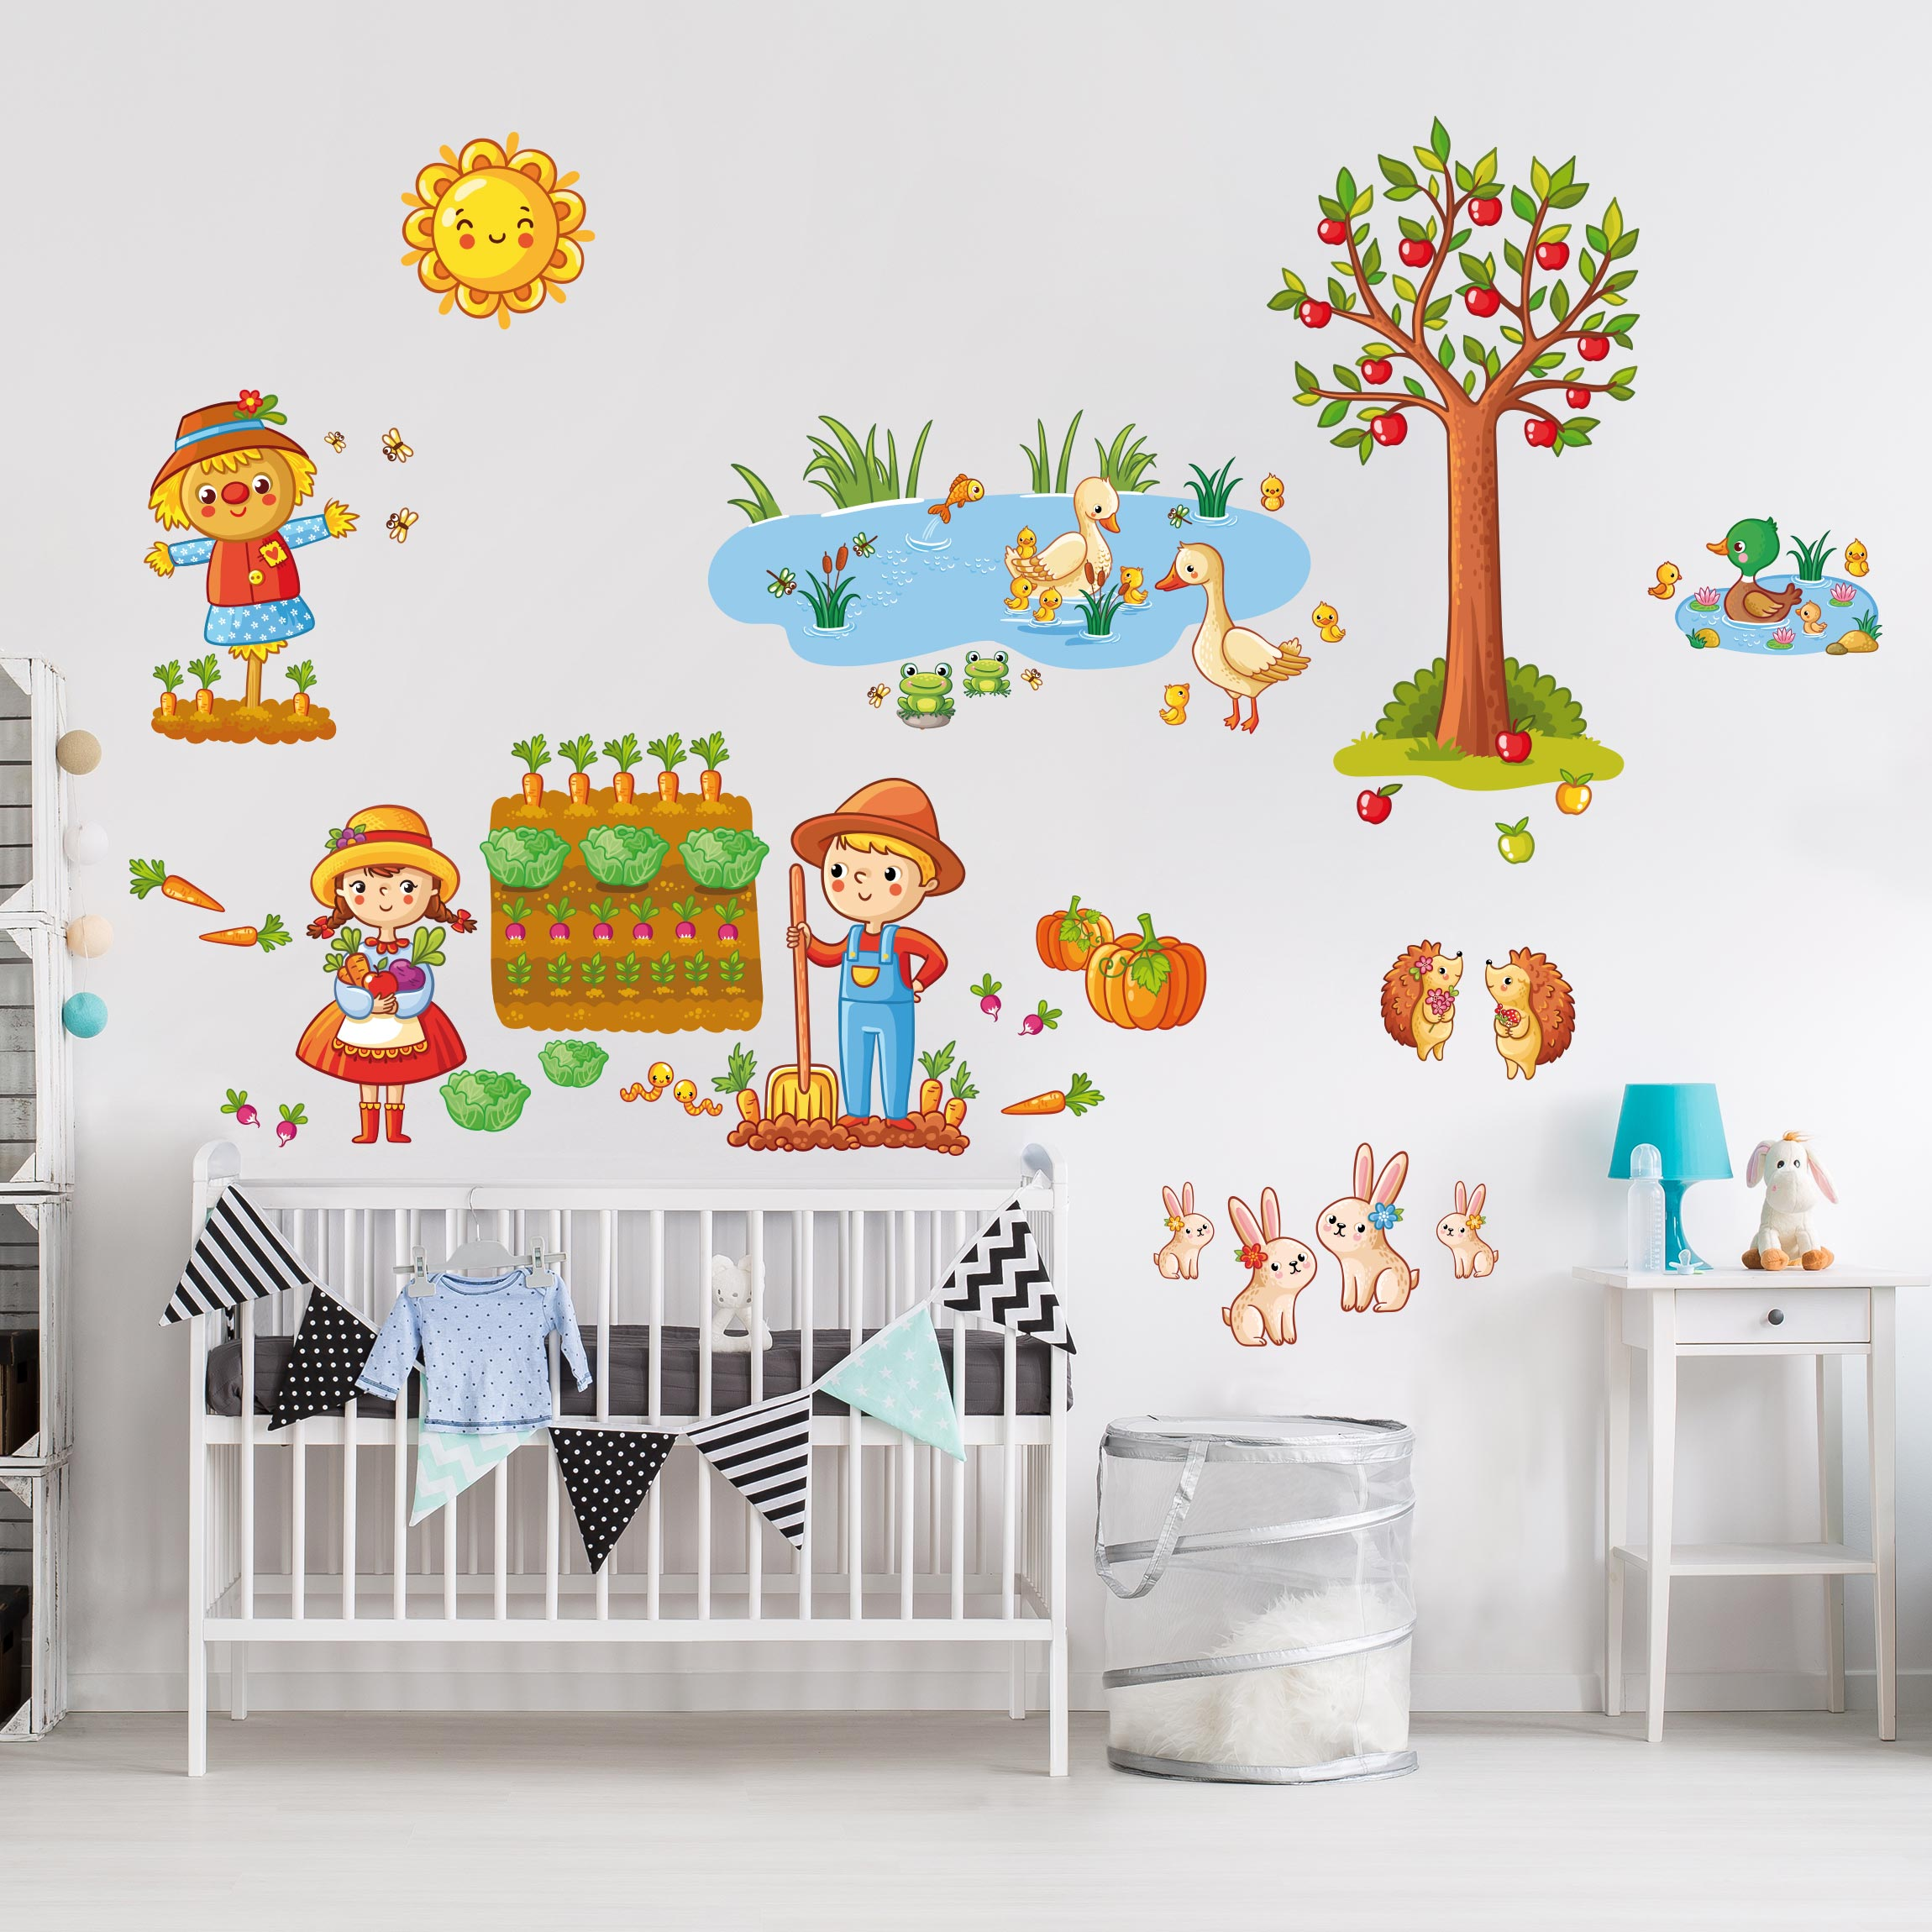 wandtattoo kinderzimmer bauernhof set mit garten. Black Bedroom Furniture Sets. Home Design Ideas